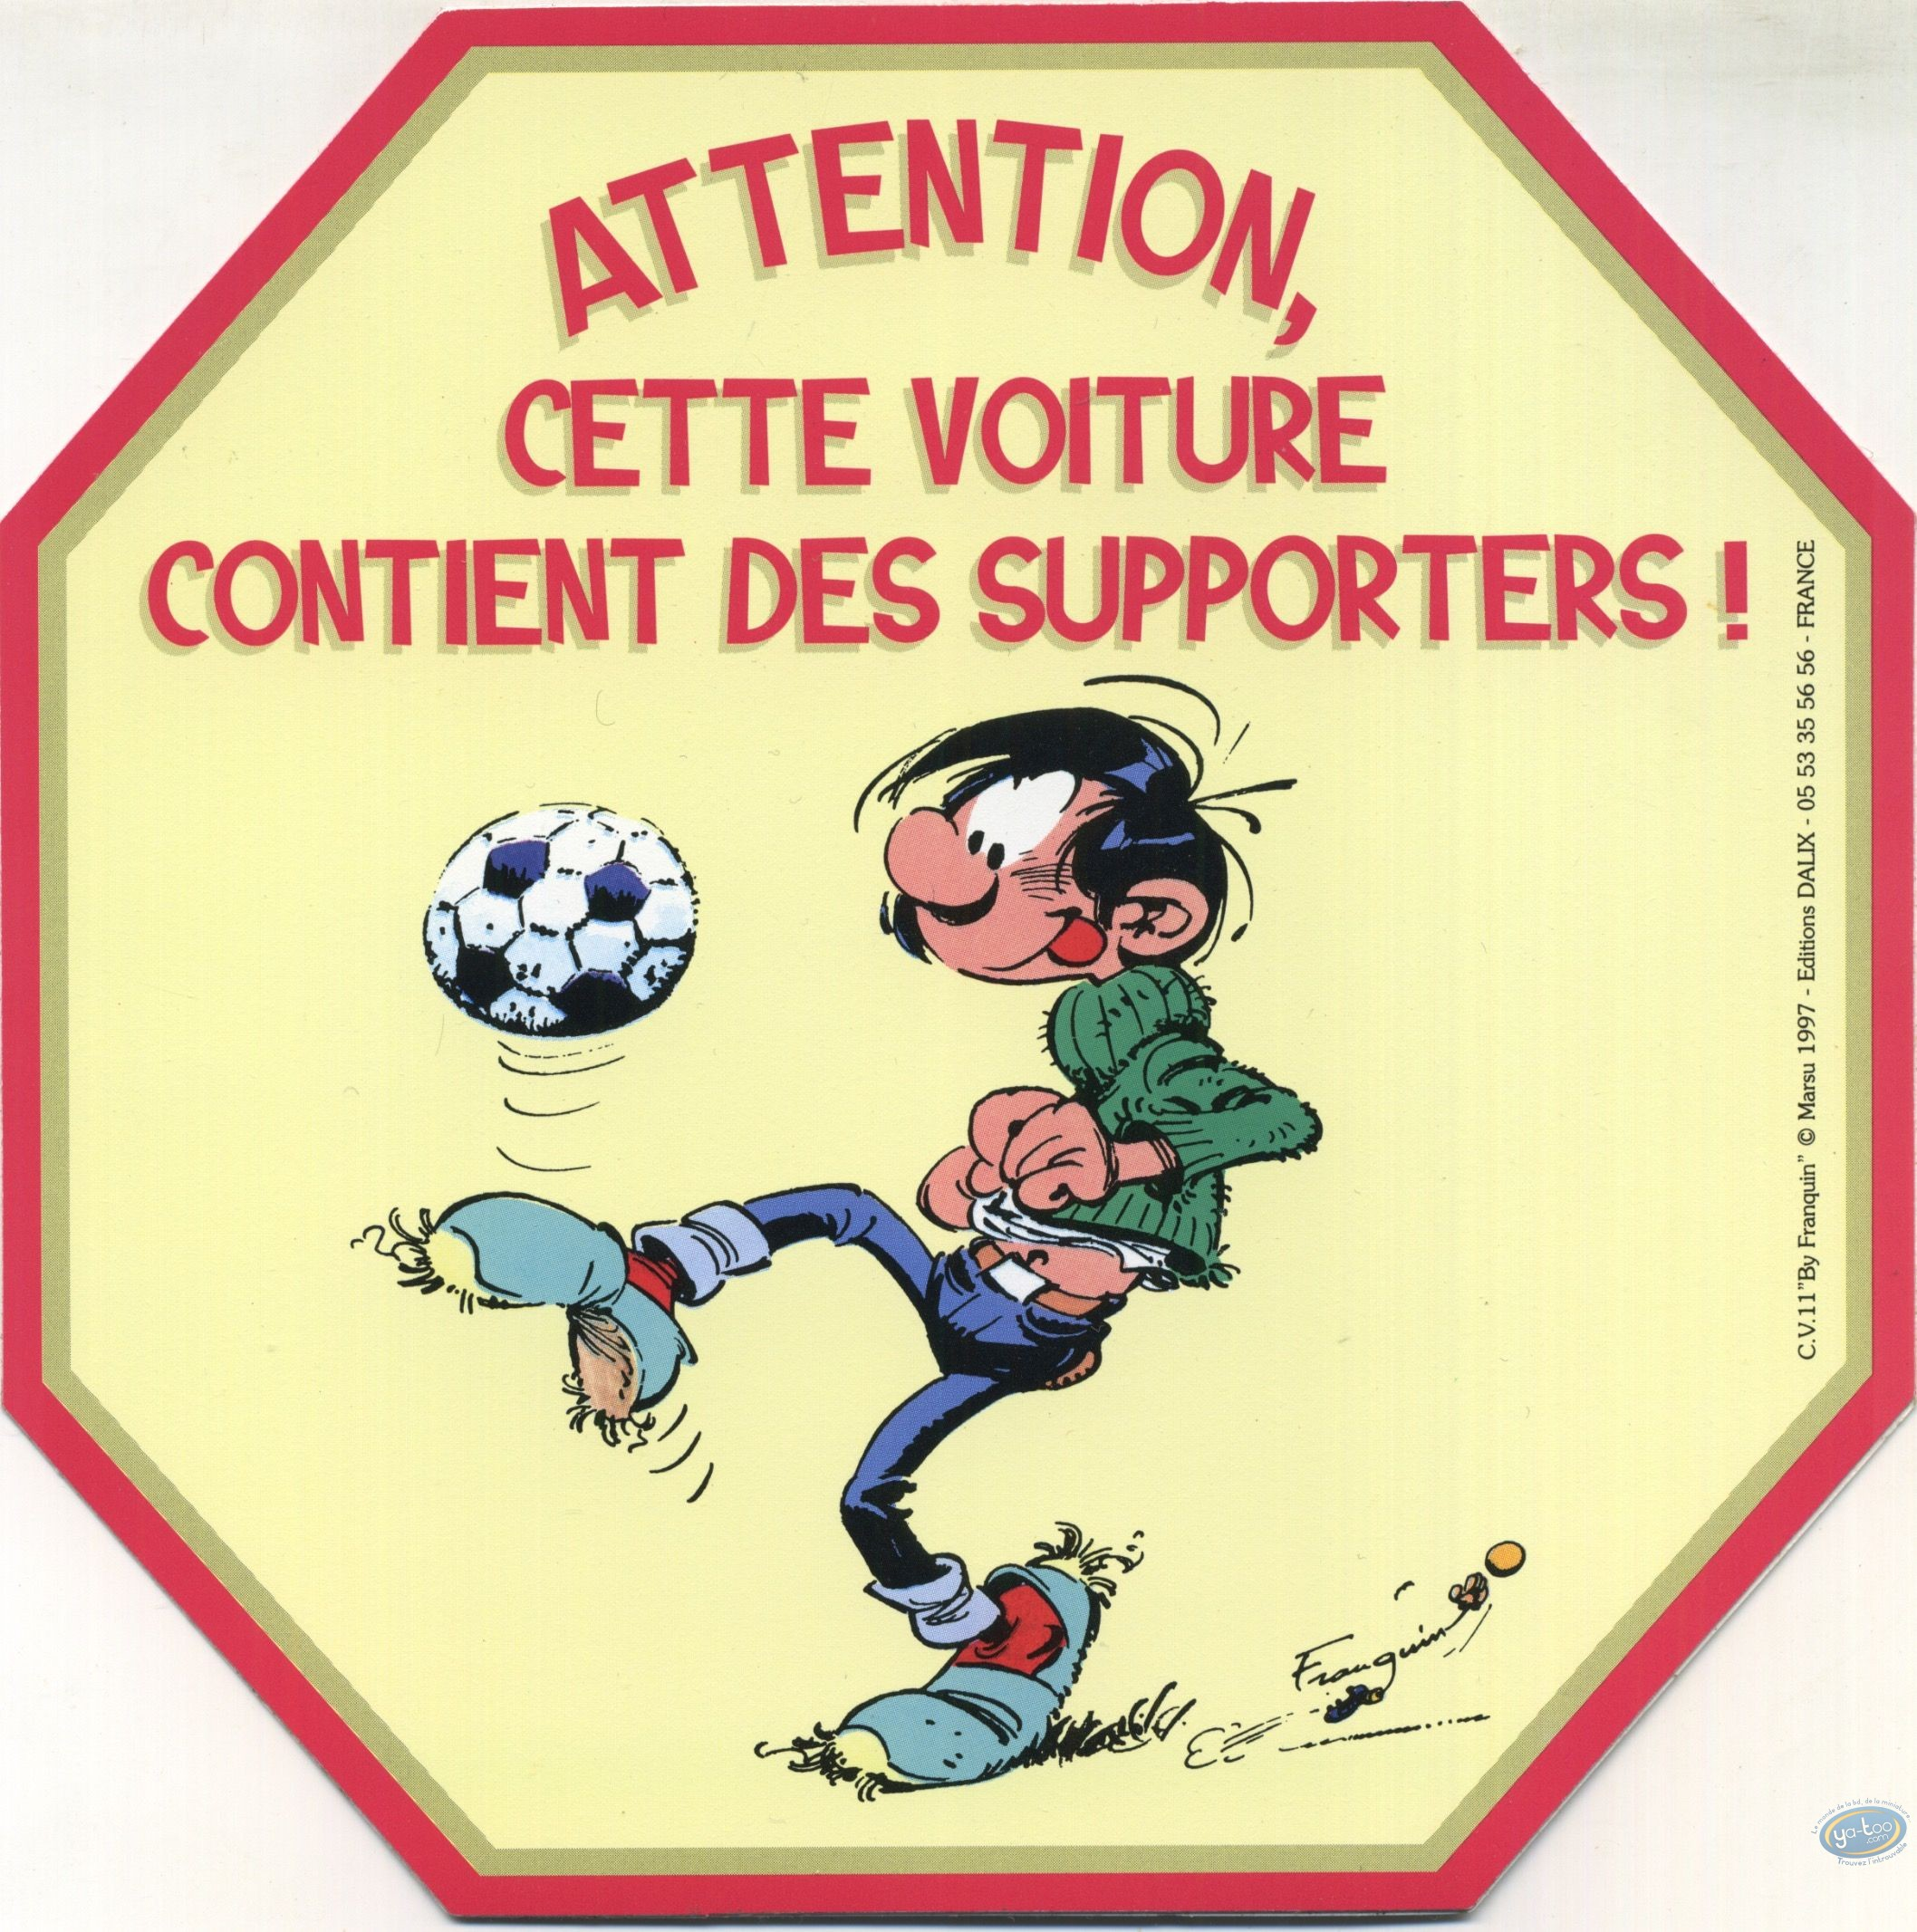 Sticker, Gaston Lagaffe : Watch out, this car contains supporters